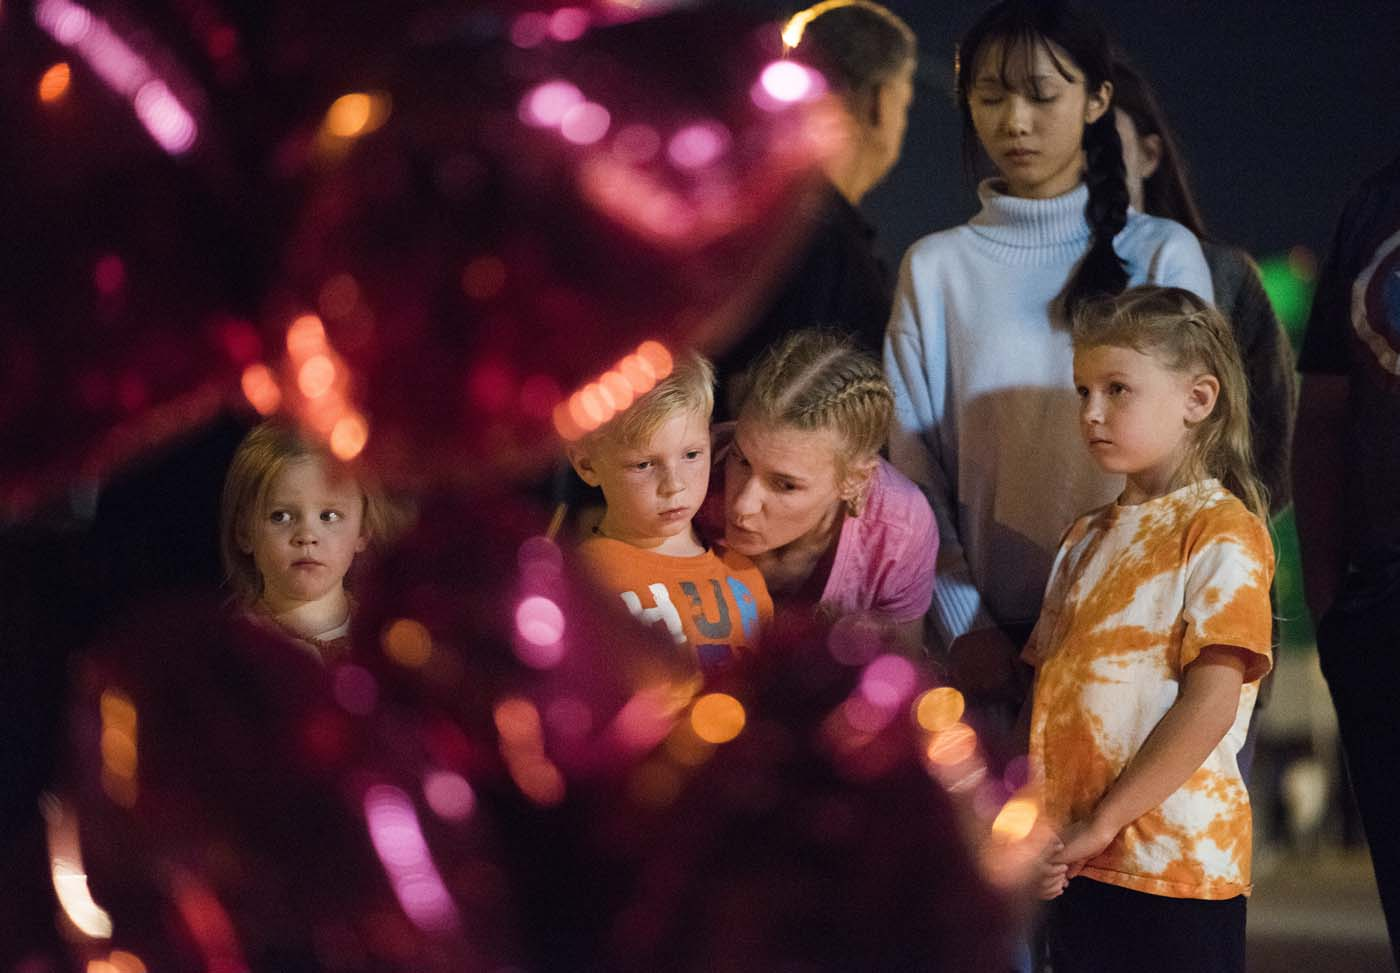 A woman talks with her children at a makeshift memorial near the Mandalay Hotel on the Las Vegas Strip, in Las Vegas, Nevada on October 3, 2017, after a gunman killed 58 people and wounded more than 500 others, before taking his own life, when he opened fire from a hotel on a country music festival. Police said the gunman, a 64-year-old local resident named as Stephen Paddock, had been killed after a SWAT team responded to reports of multiple gunfire from the 32nd floor of the Mandalay Bay, a hotel-casino next to the concert venue. / AFP PHOTO / Robyn Beck